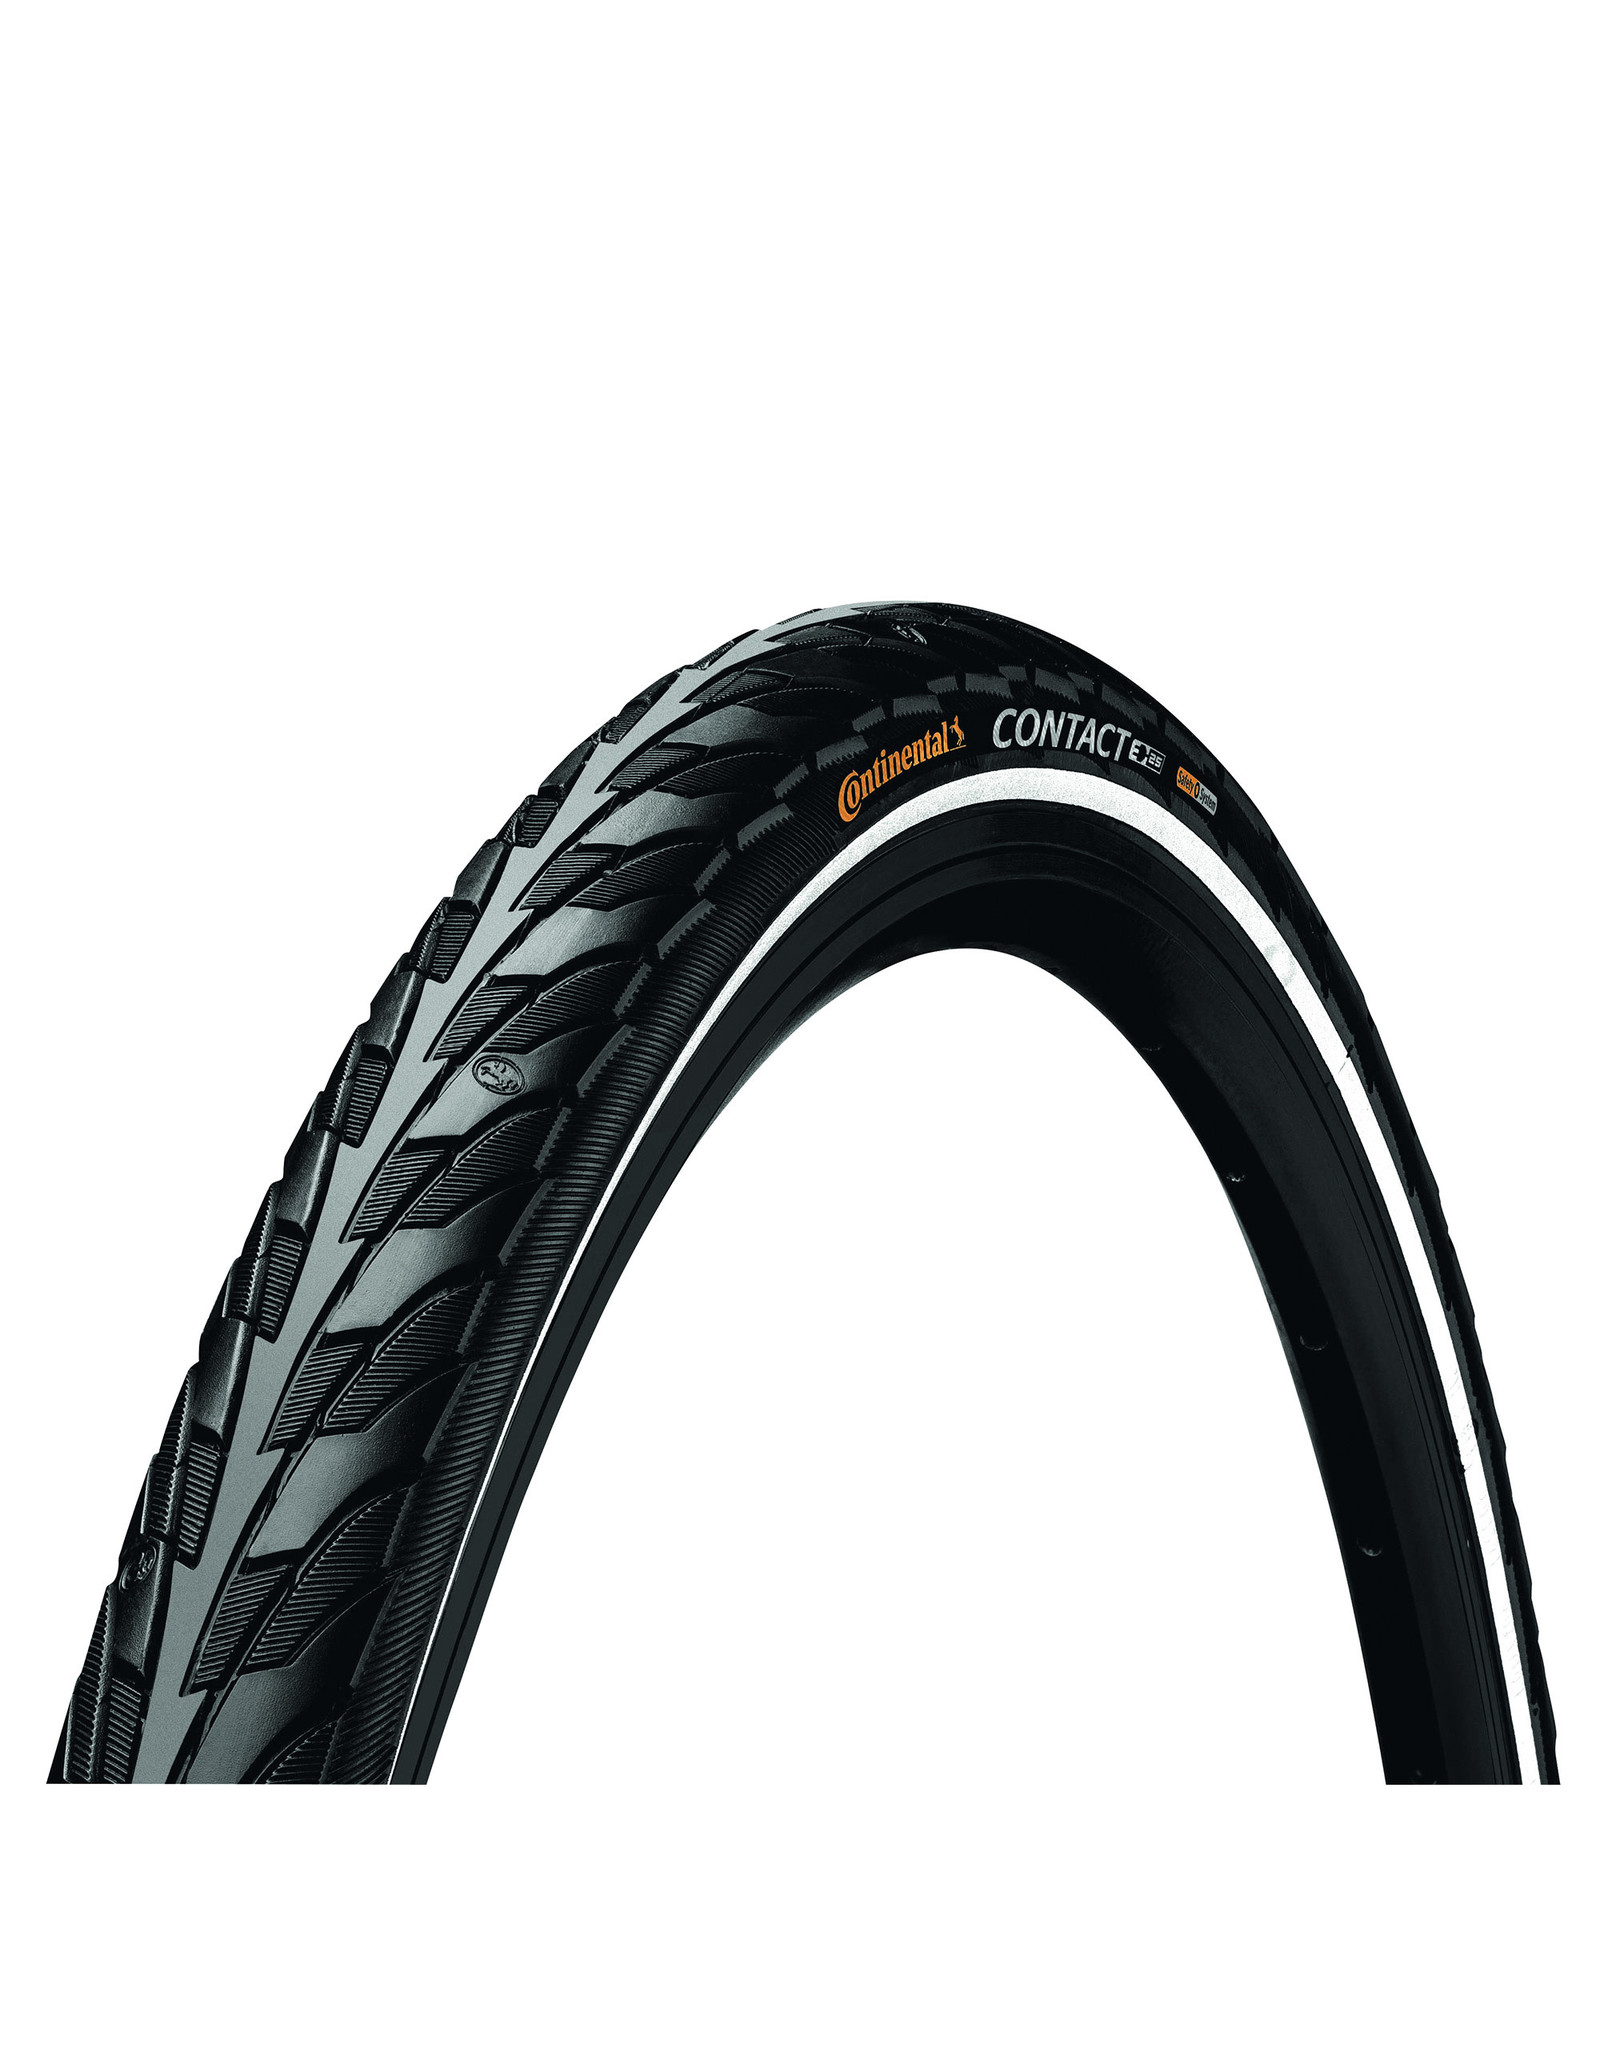 Continental Tyre Contact 20 x 1.75